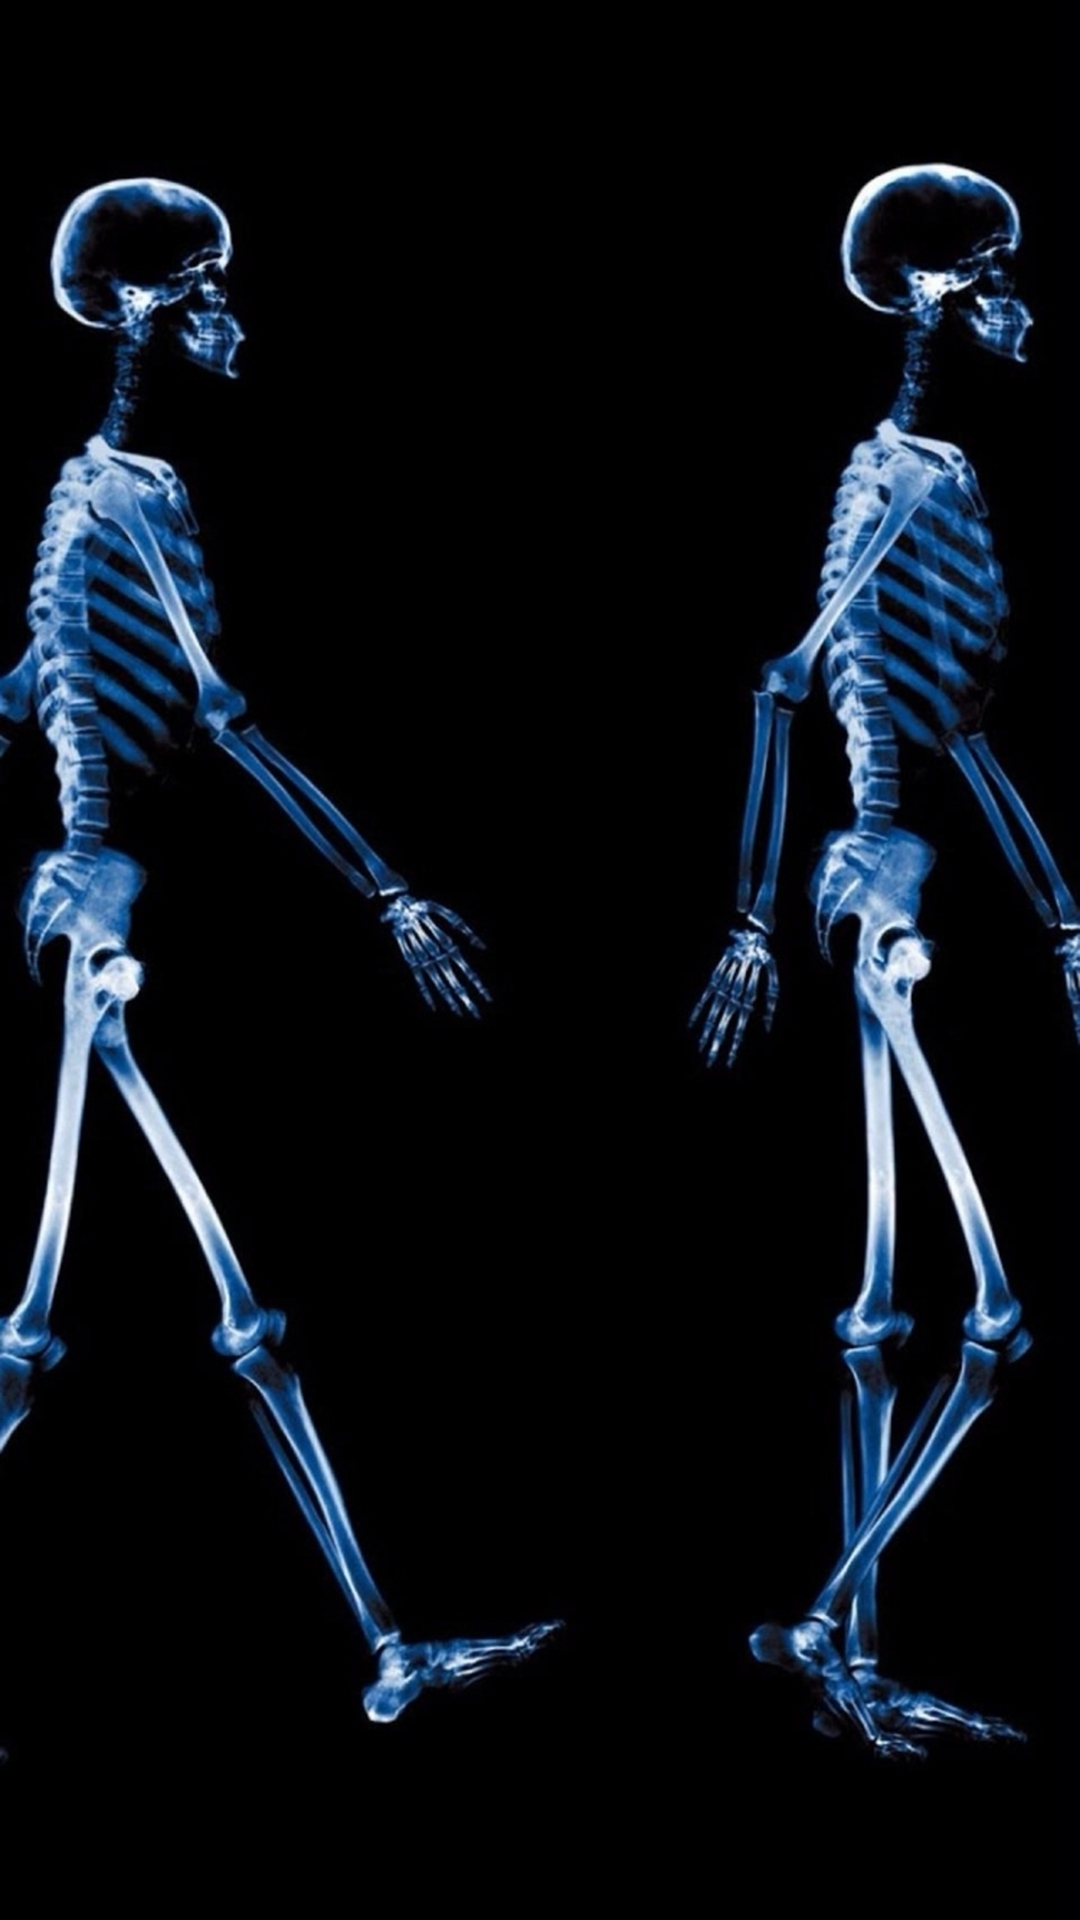 Abstract-Xray-Walking-Human-Skeleton-Dark-iPhone-wallpaper-wp3002980